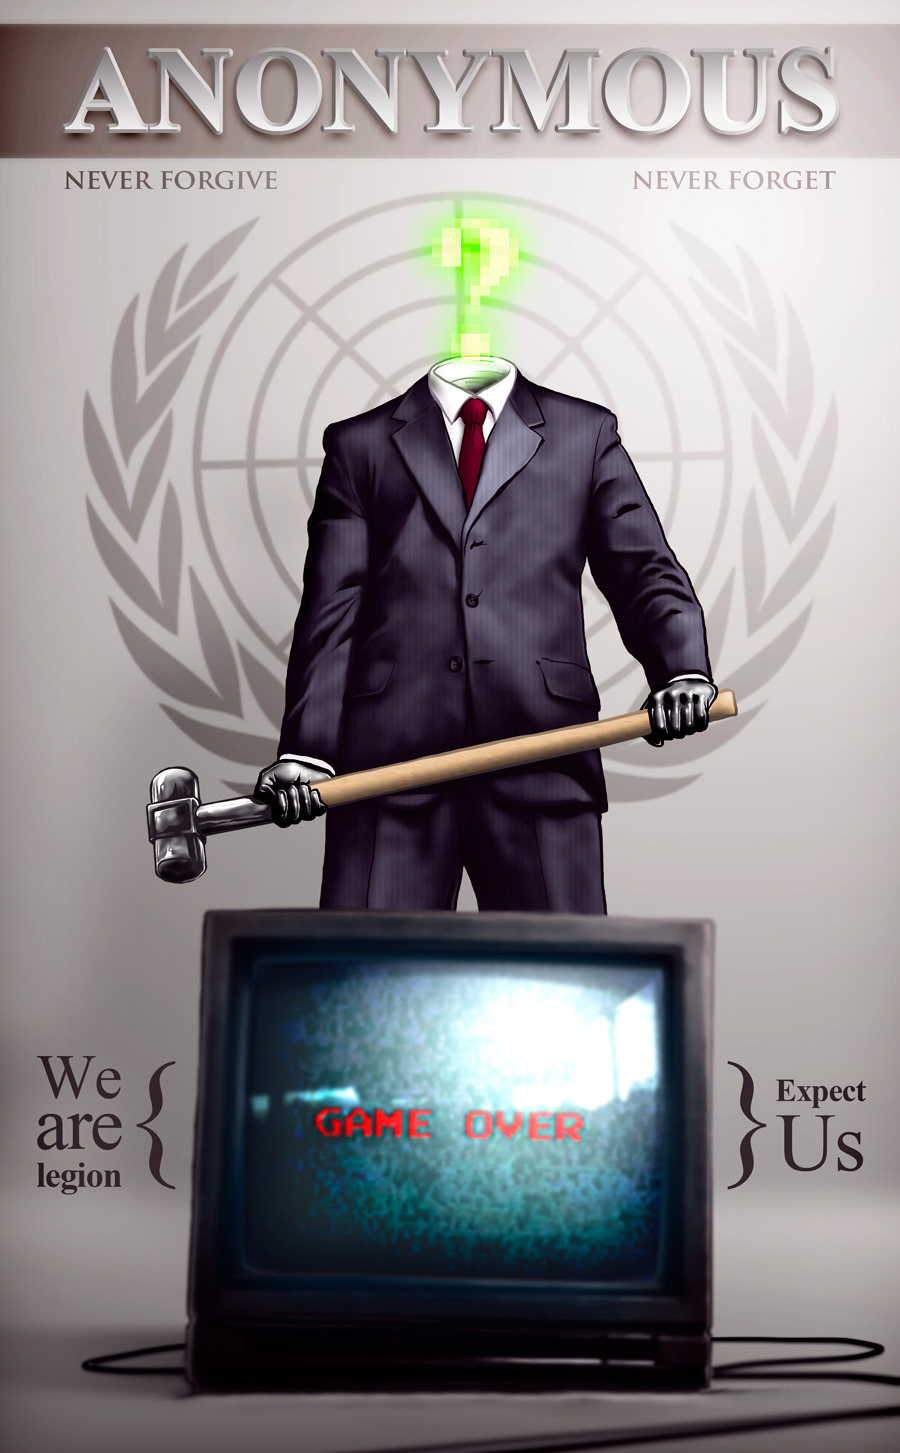 Anonymous poster A little gift 4 all / Un pequeño regalo para todos…